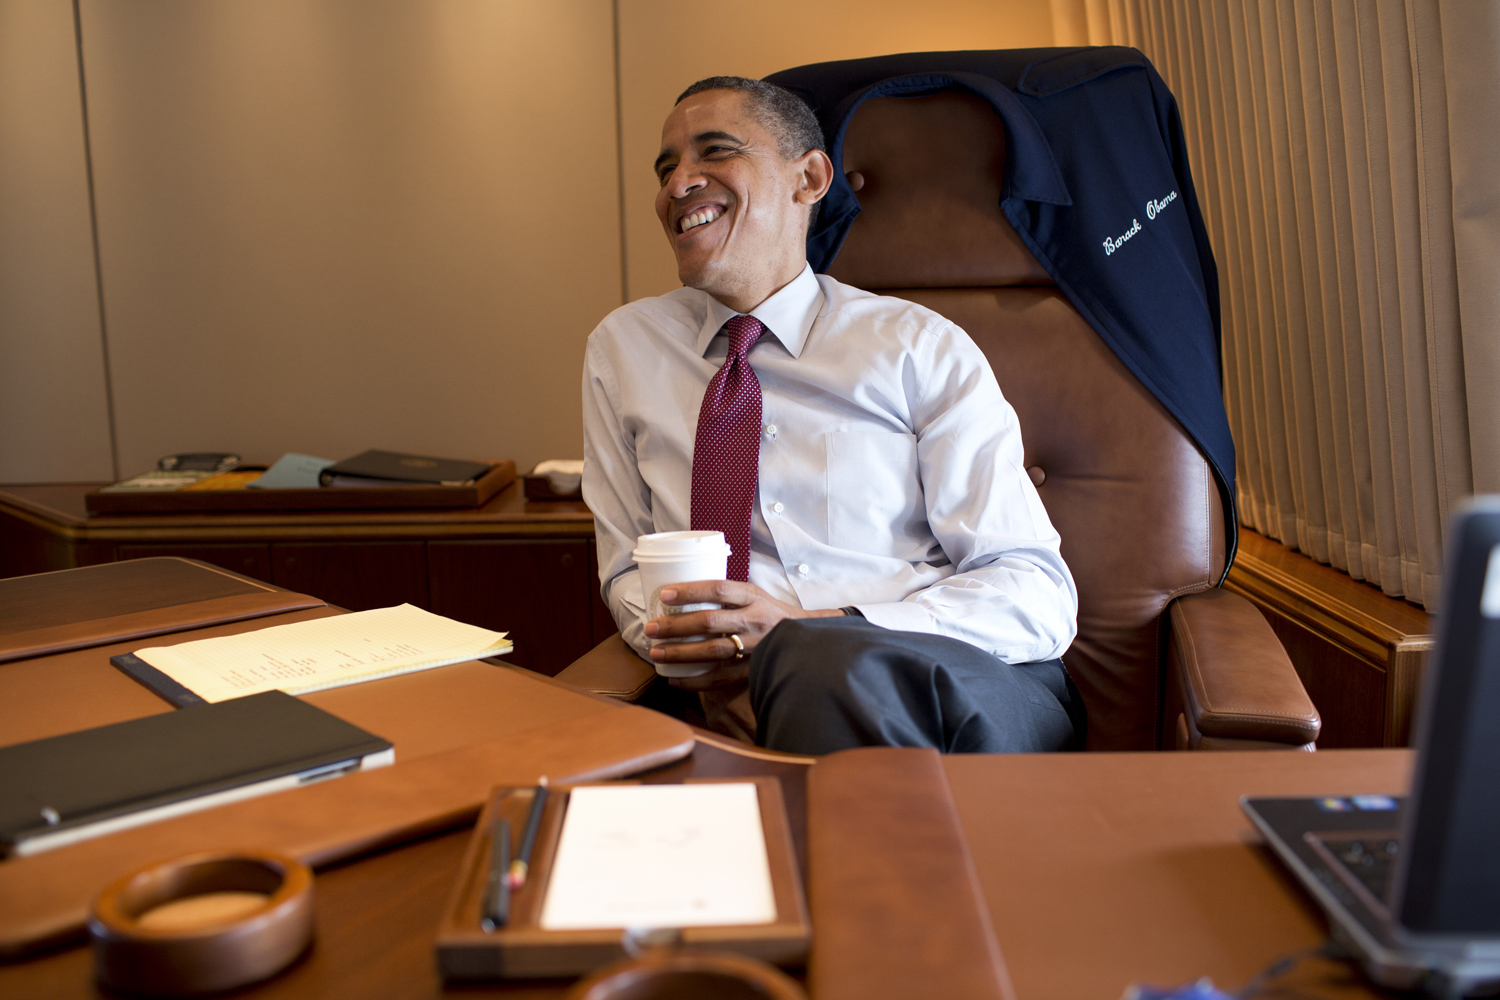 President Obama works in his private office aboard Air Force One.